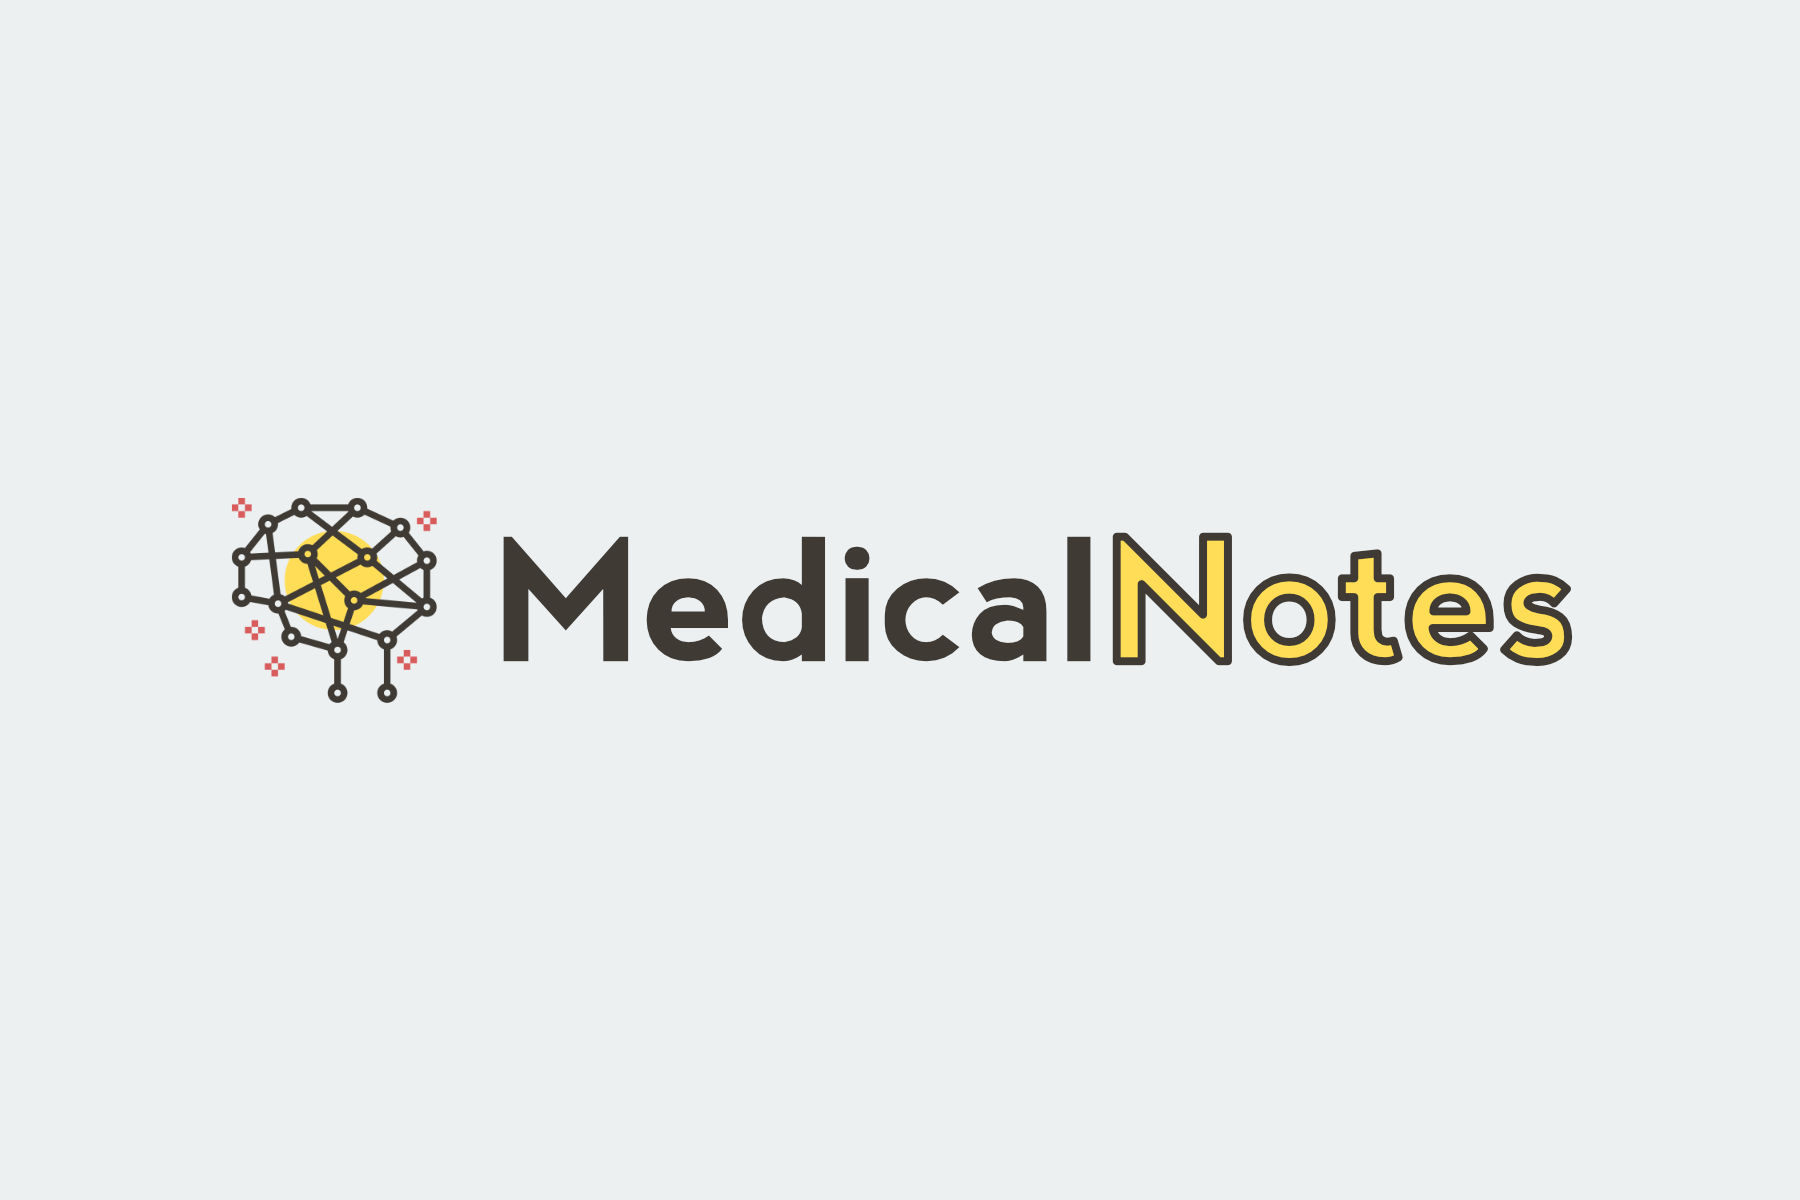 Medical Notes logo